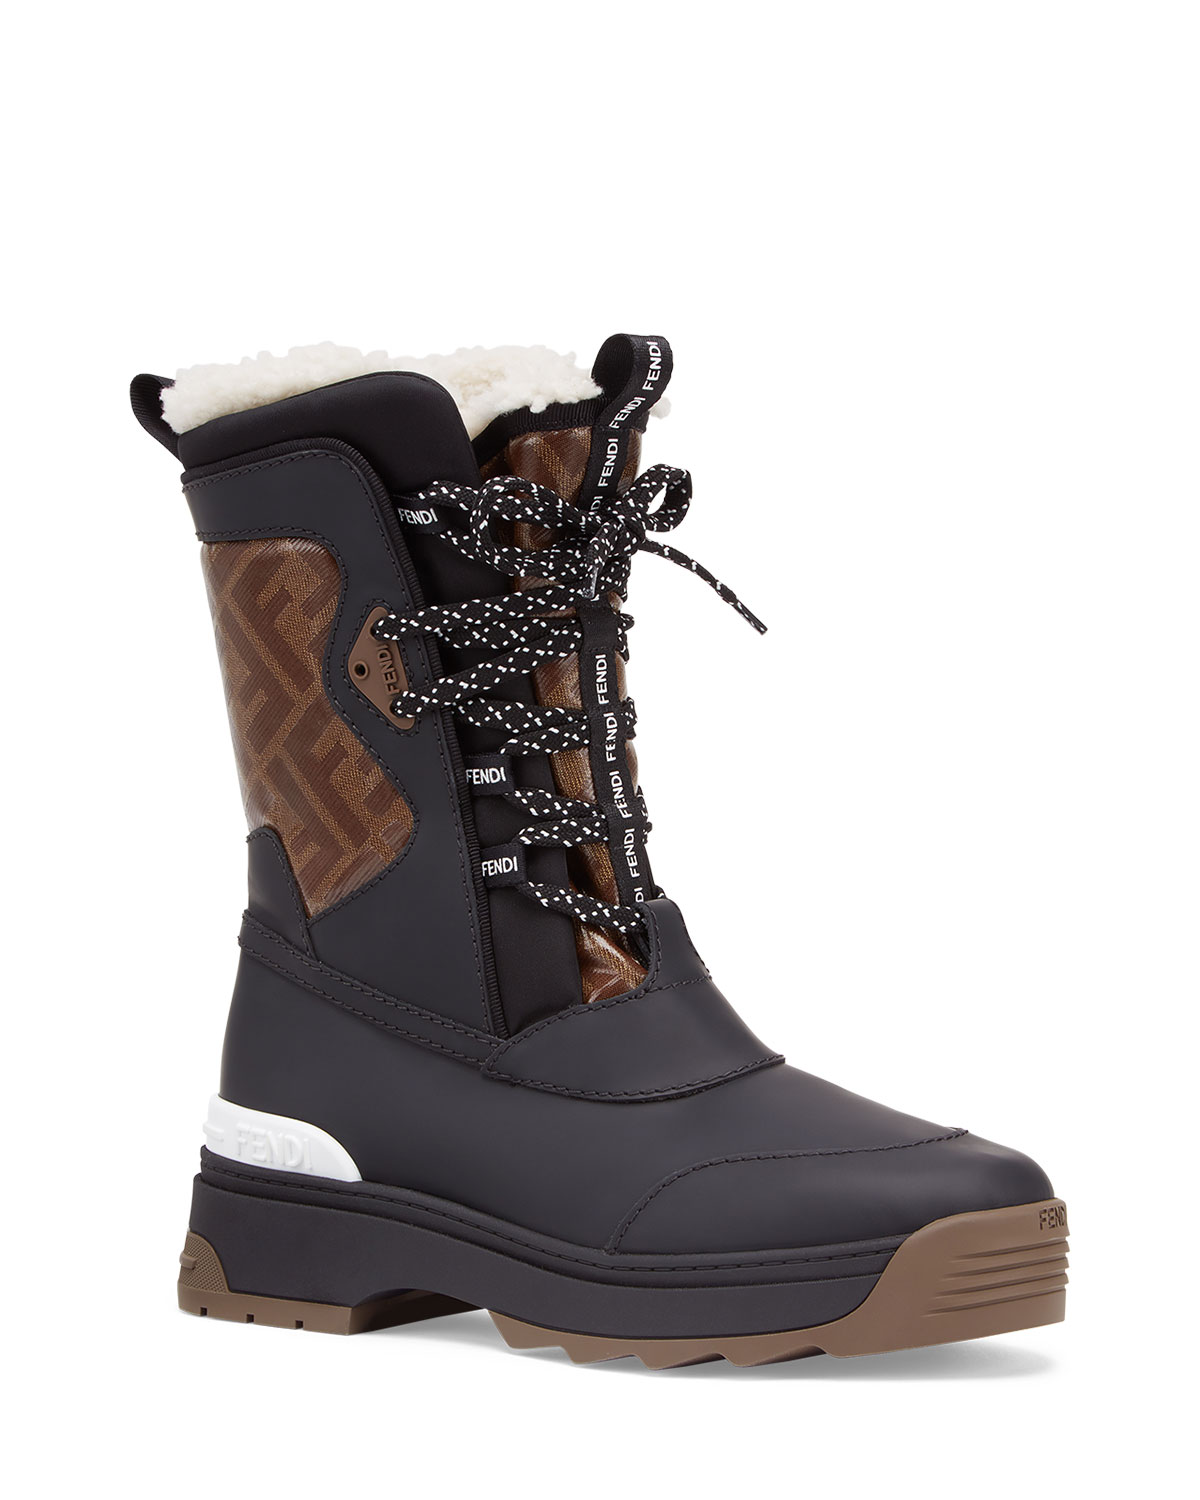 FF Shearling Snow Boots